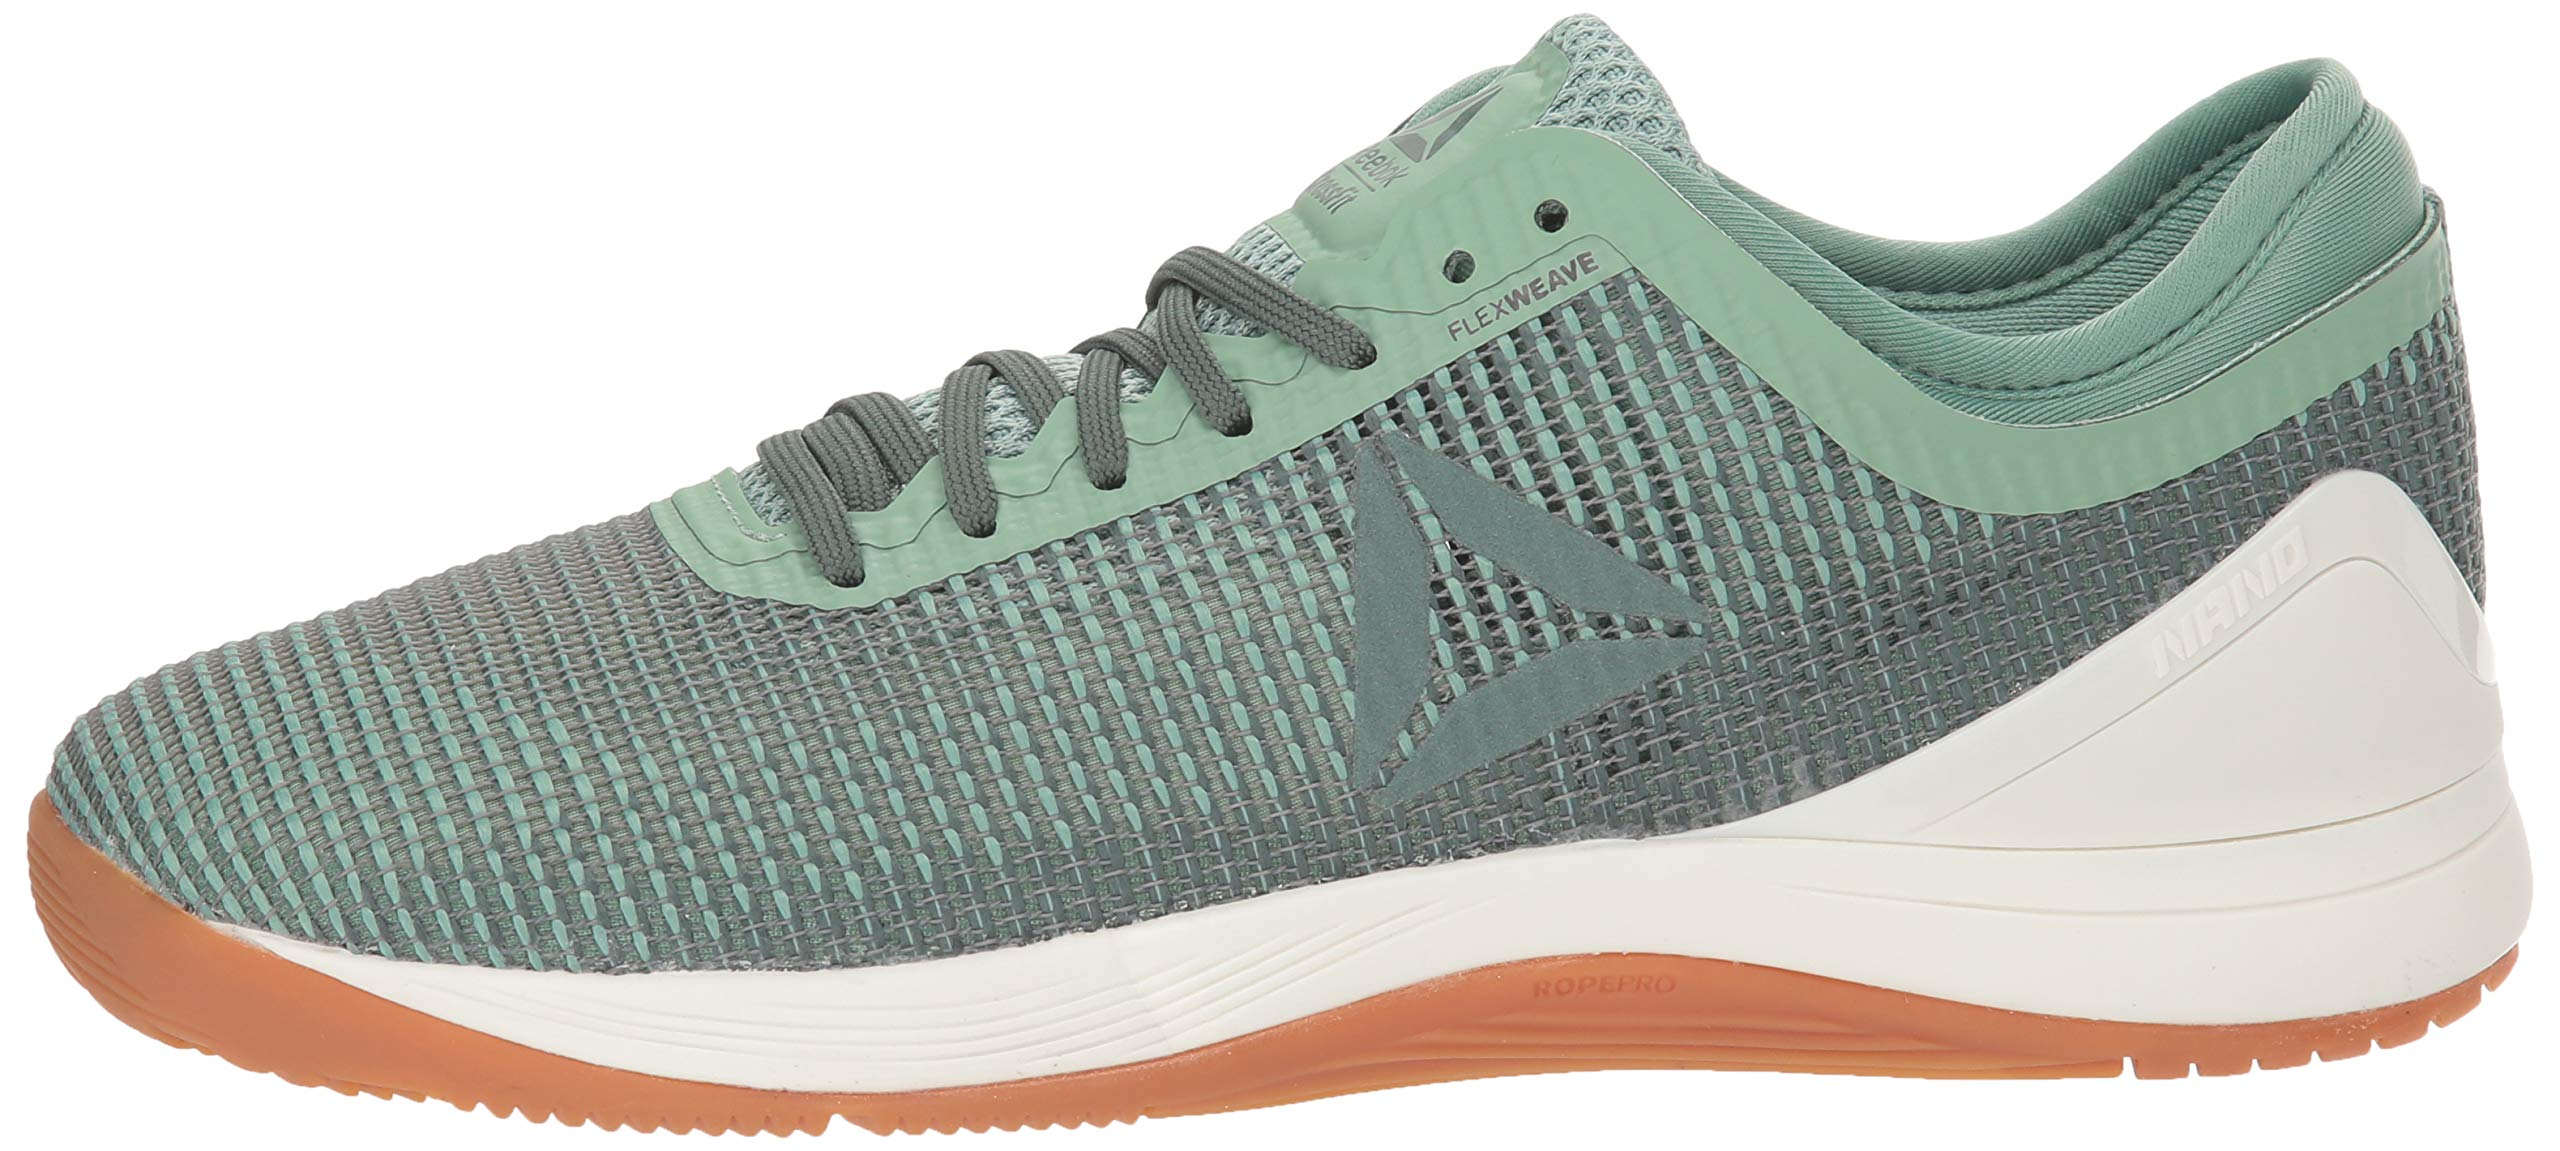 Reebok Women's CROSSFIT Nano 8.0 Flexweave Cross Trainer, industrial green/chalk grey, 5 M US by Reebok (Image #5)